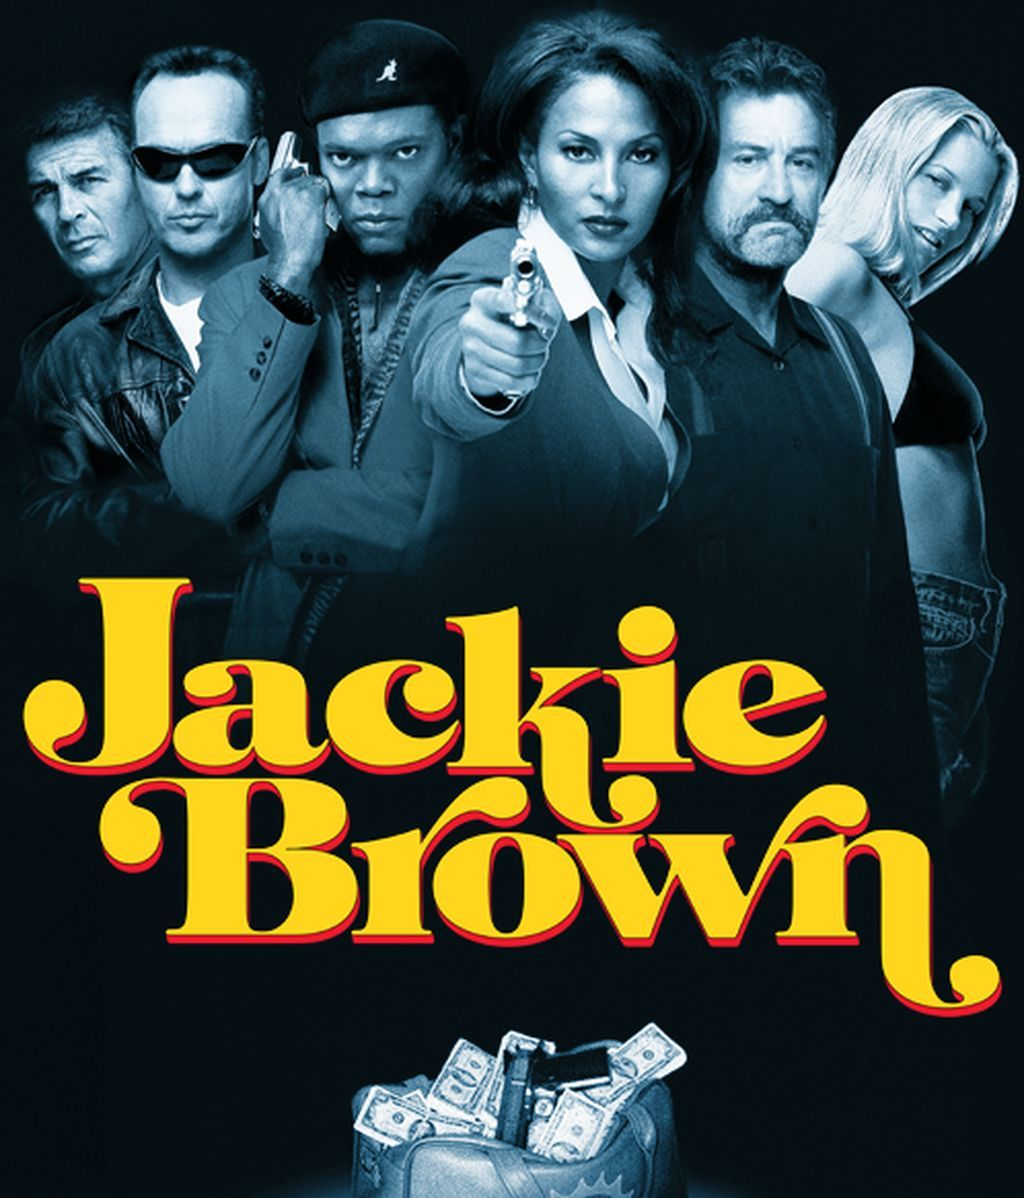 749_JackieBrown_Everyone_Catalog_Poster_v2_Approved